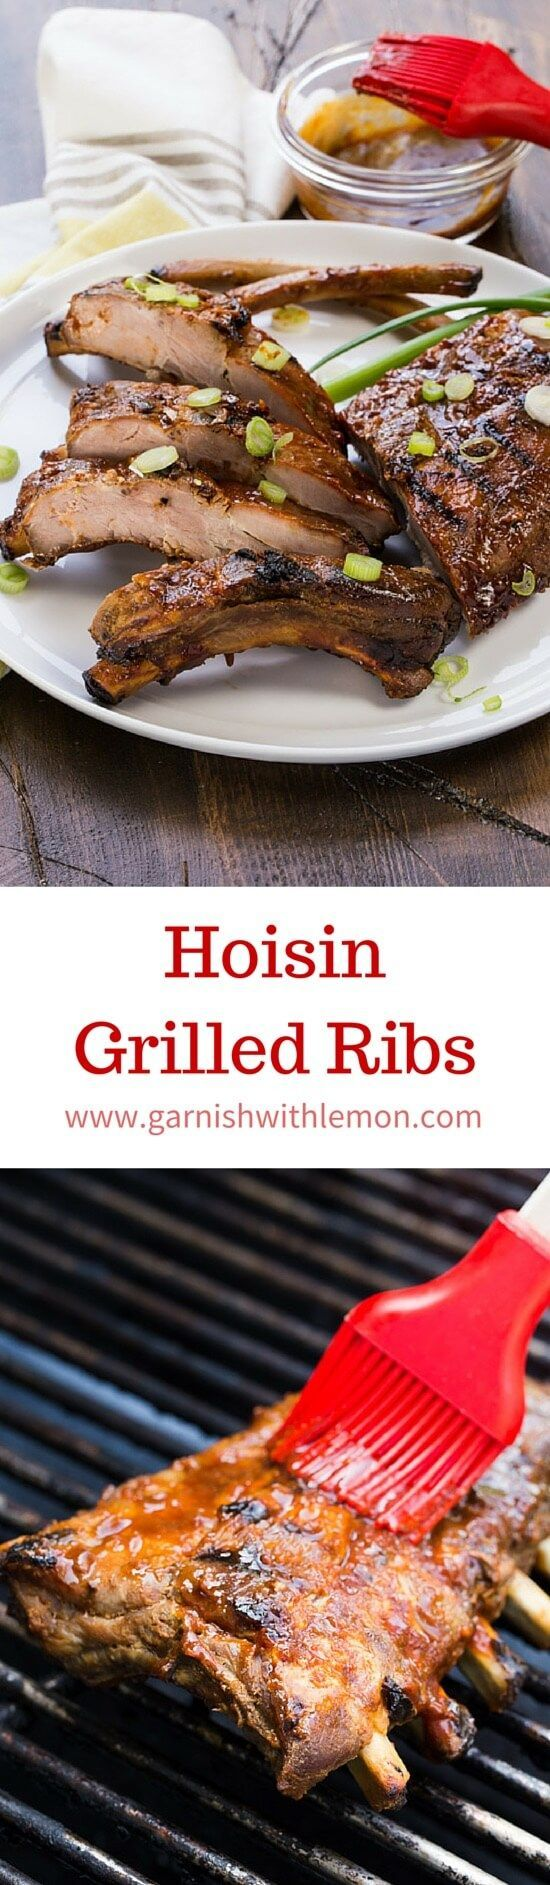 ... Ribs on Pinterest | Braised short ribs, Grilled baby back ribs and